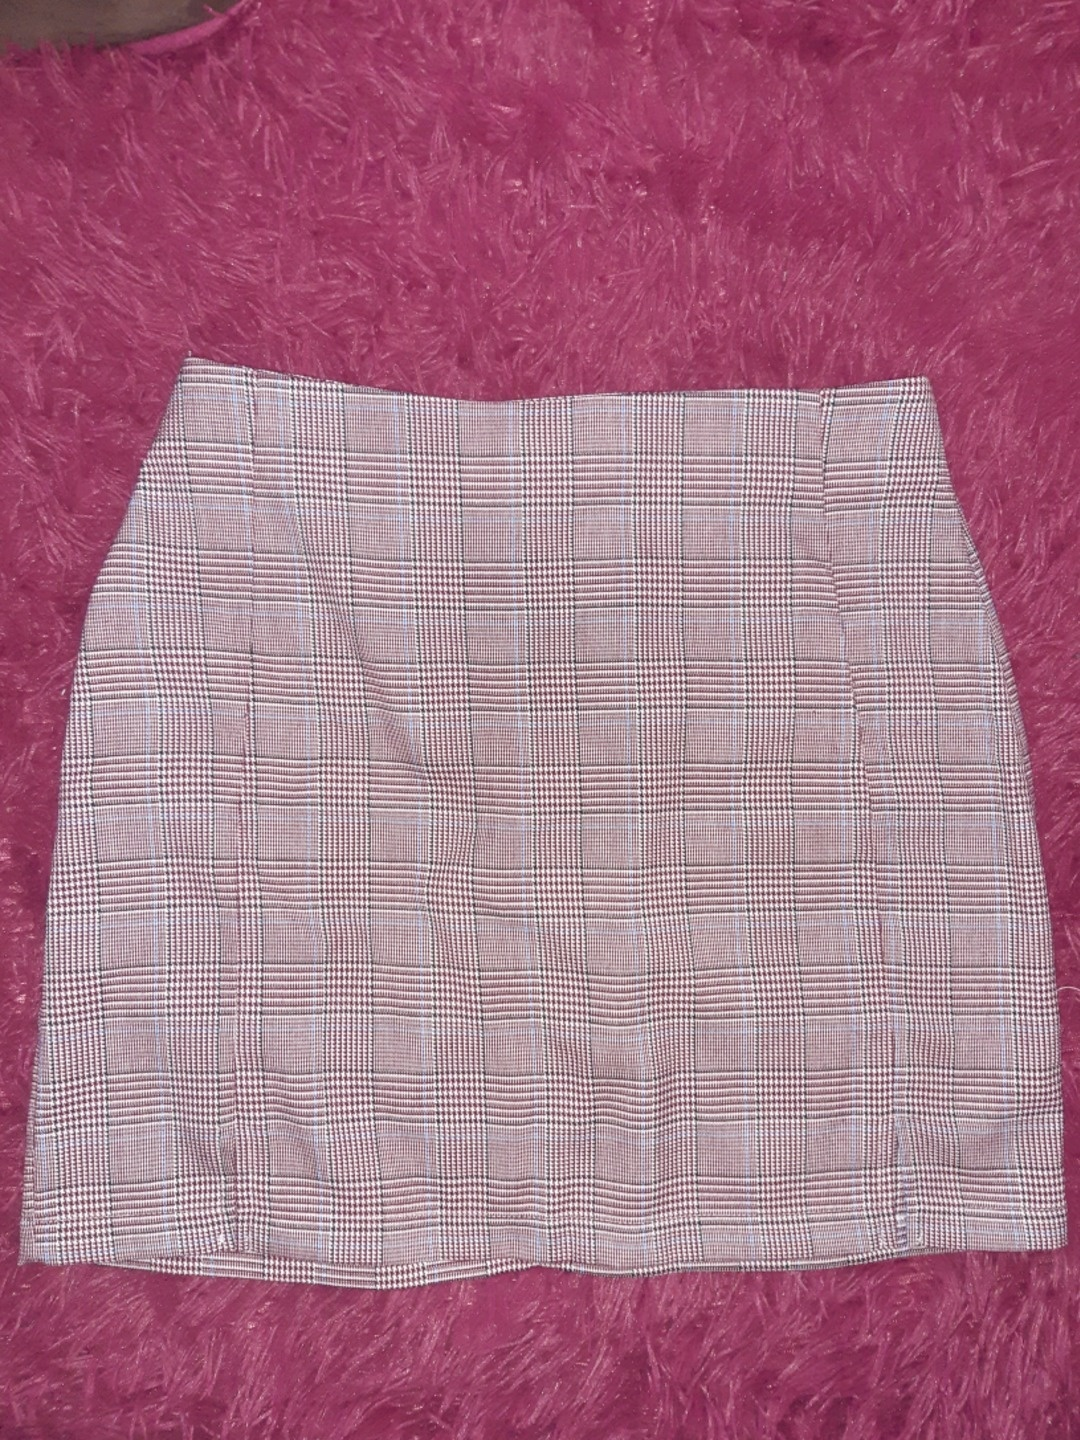 Women's skirts - C&A photo 1